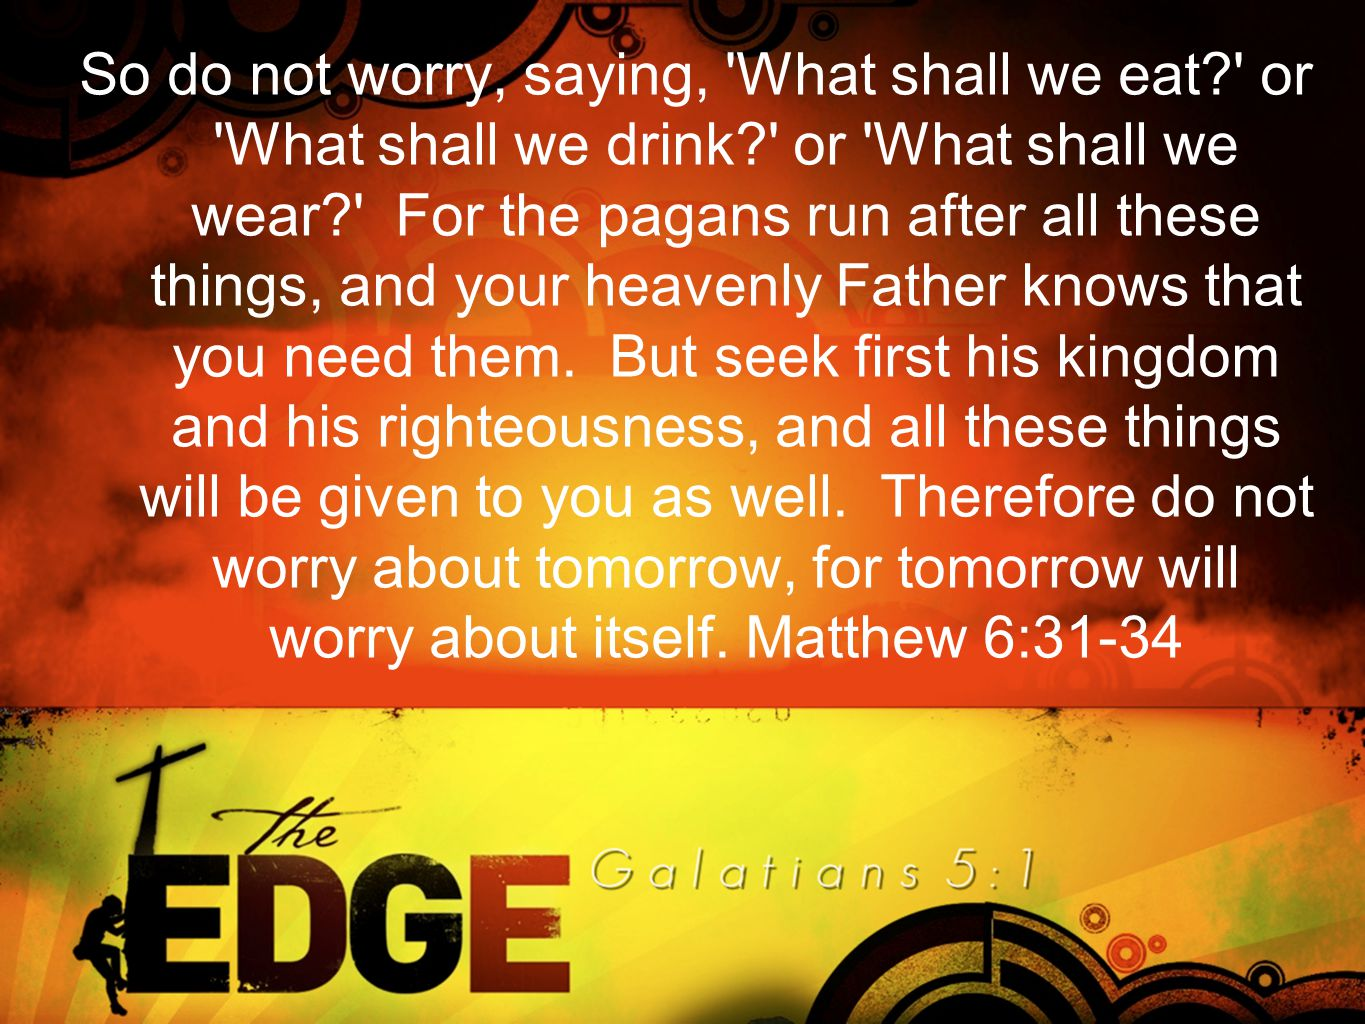 So do not worry, saying, What shall we eat or What shall we drink or What shall we wear For the pagans run after all these things, and your heavenly Father knows that you need them.